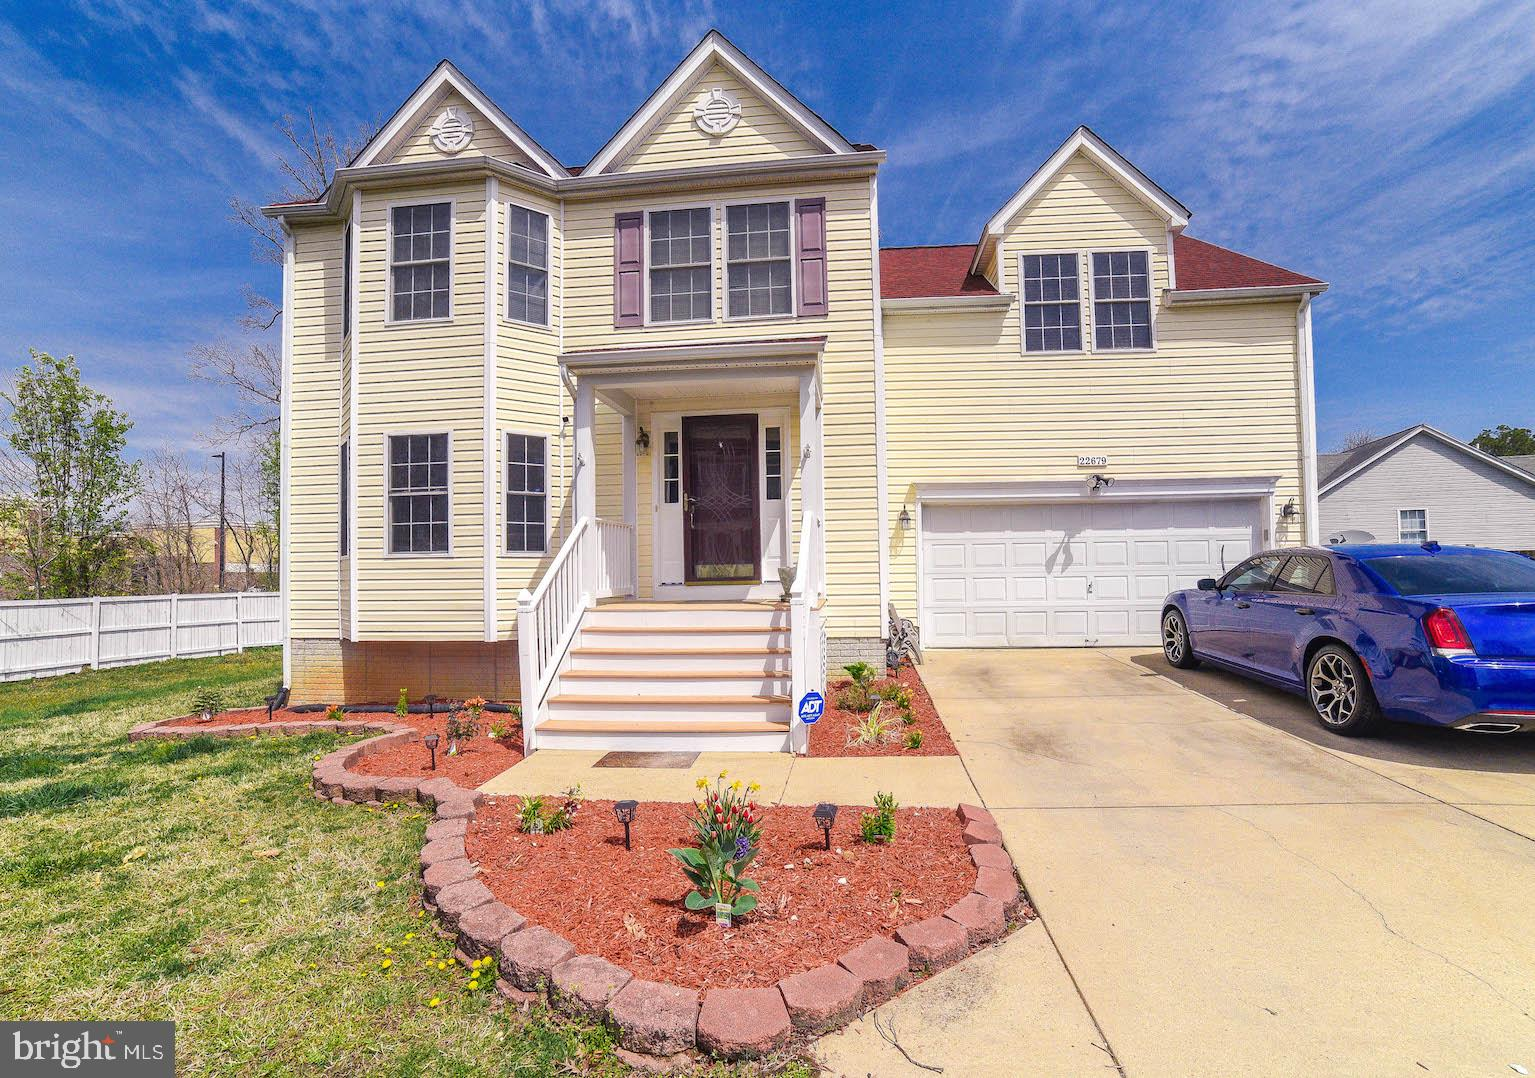 22679 KINNEGAD DRIVE, GREAT MILLS, MD 20634